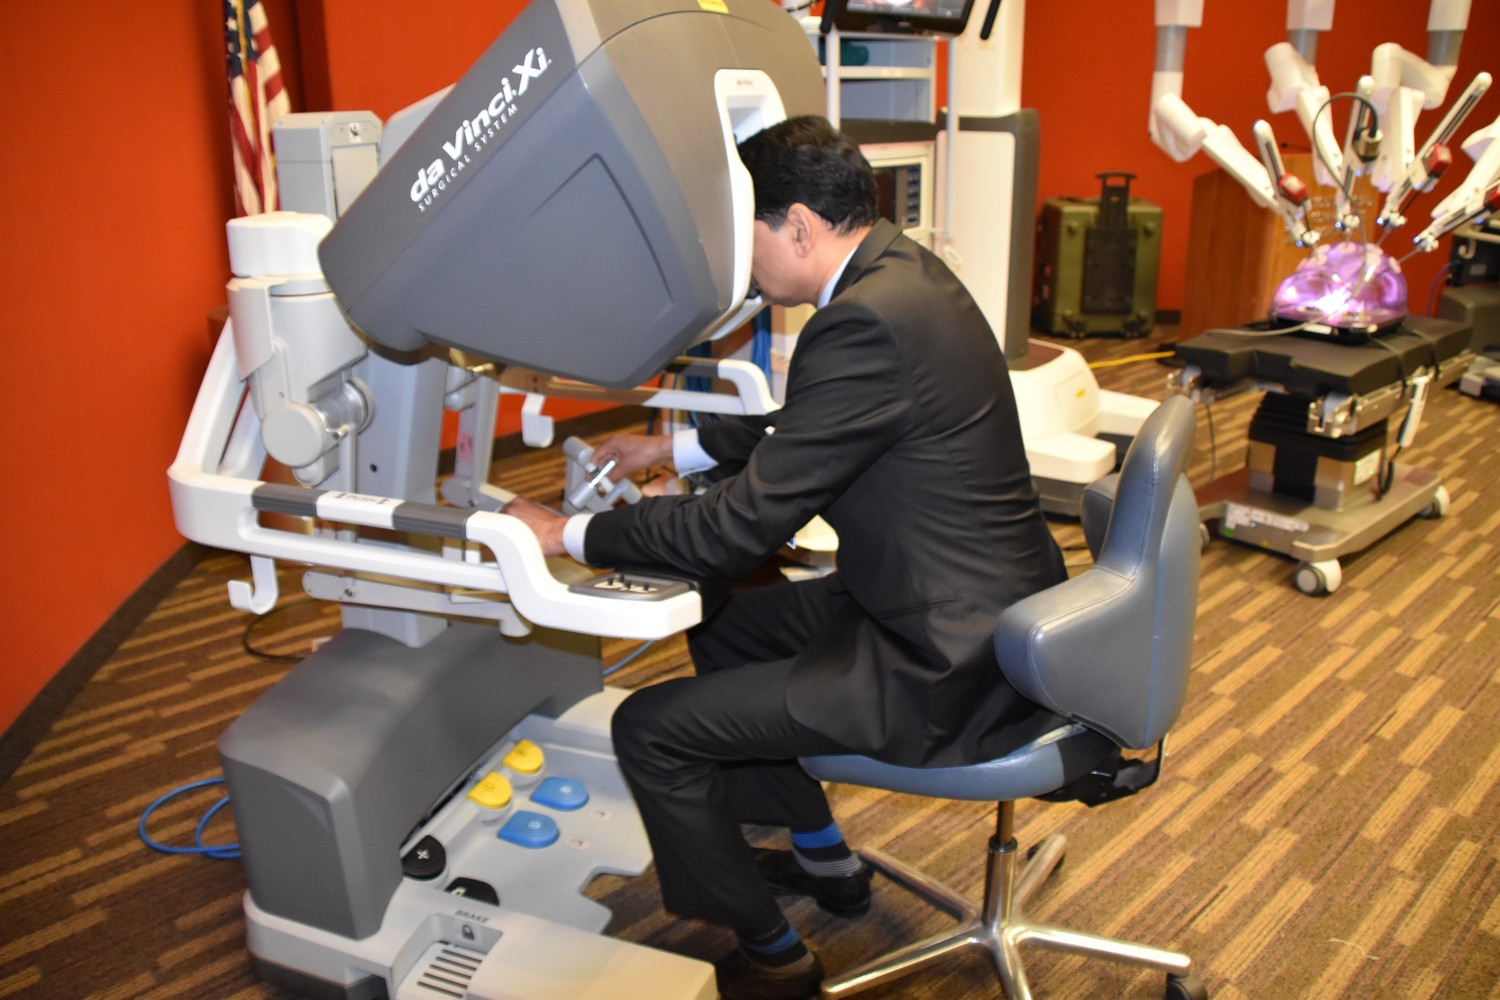 Chairman of Surgery Dr. Rajiv Datta demonstrated the technology.